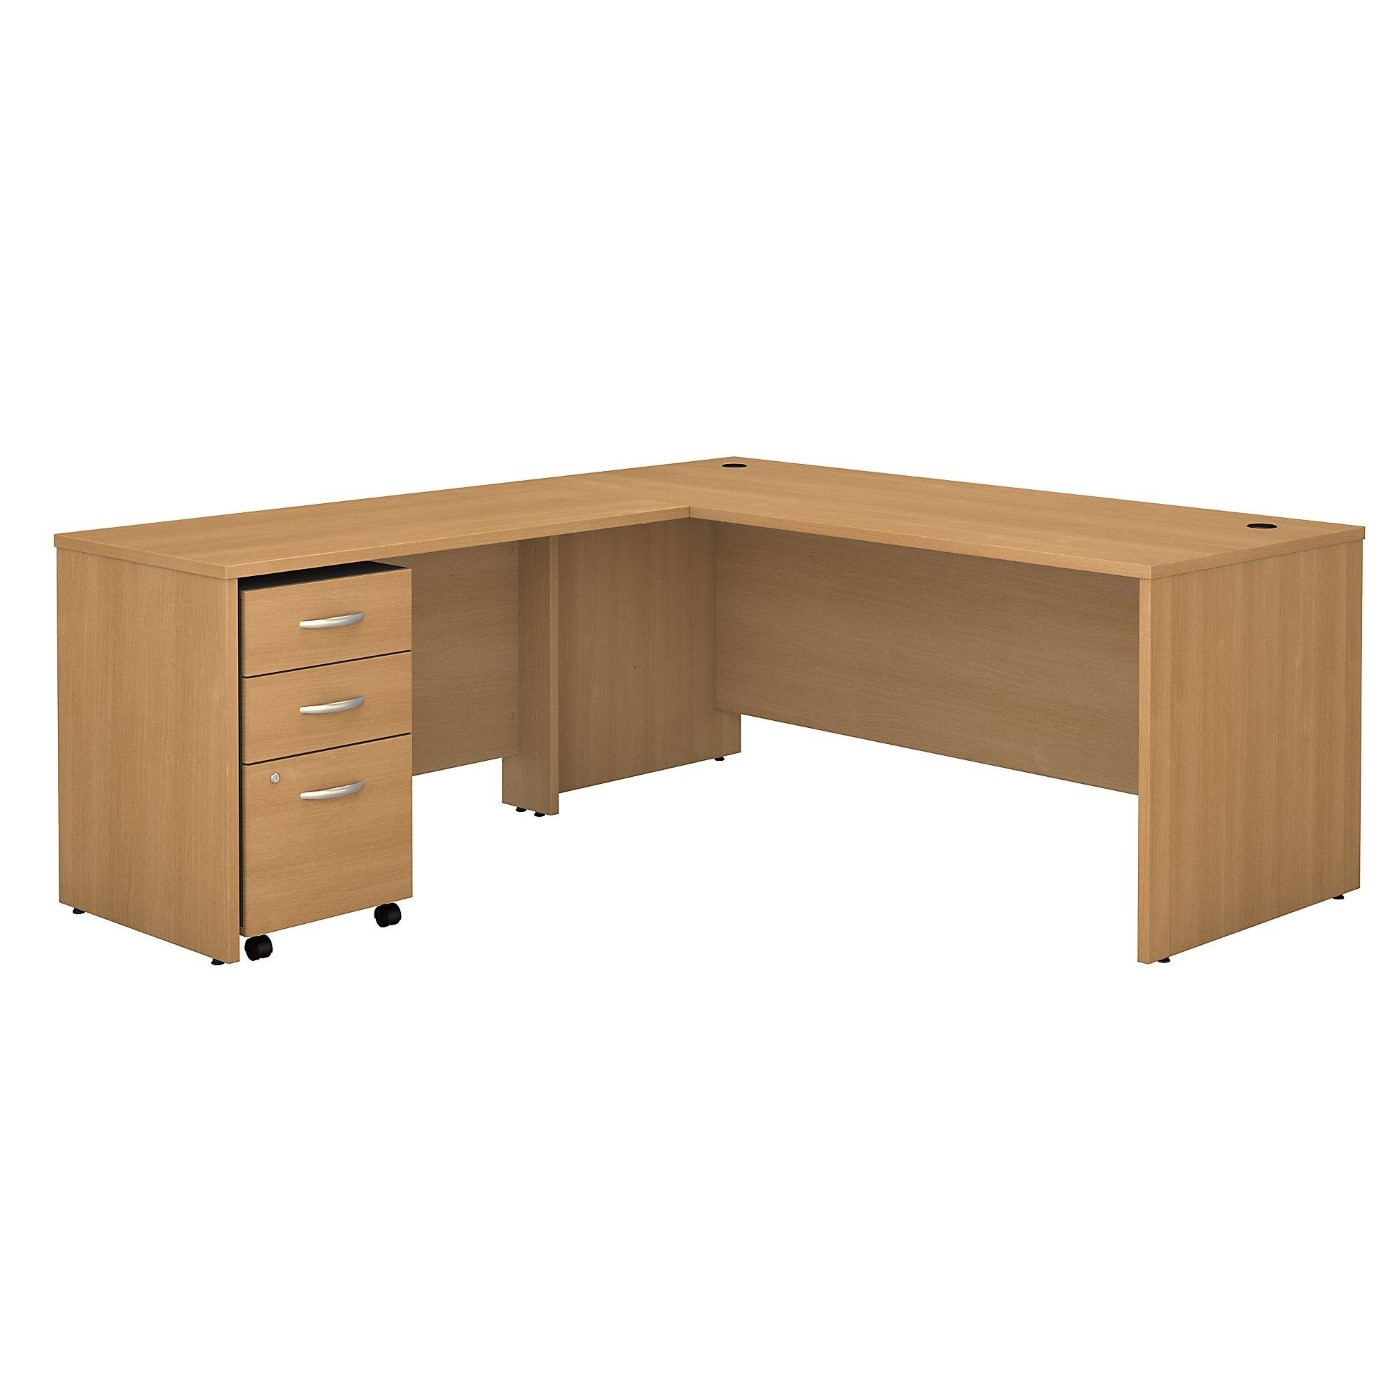 BUSH BUSINESS FURNITURE SERIES C 72W L SHAPED DESK WITH 48W RETURN AND MOBILE FILE CABINET. FREE SHIPPING  VIDEO BELOW.